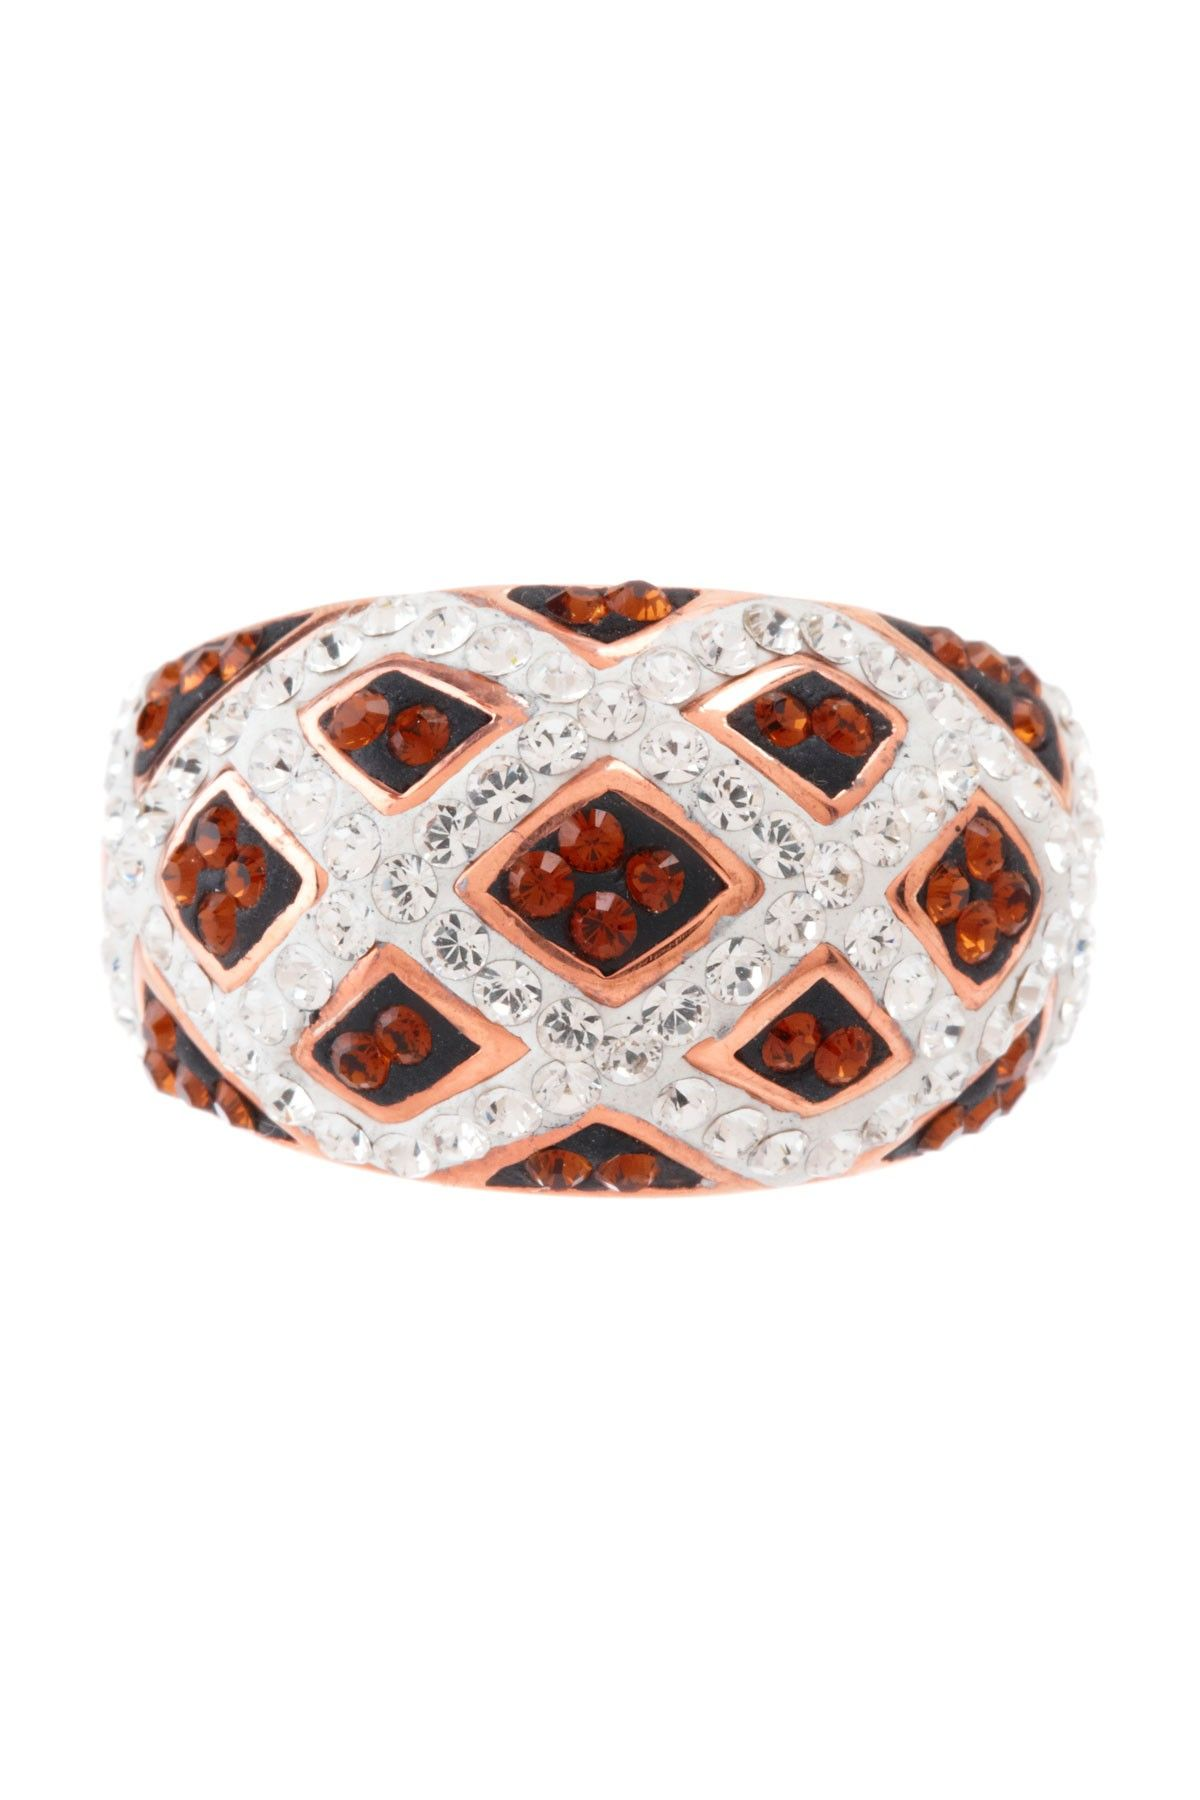 Checkerboard Hairstyle: 14K Rose Gold Plated & Crystal Checkerboard Ring